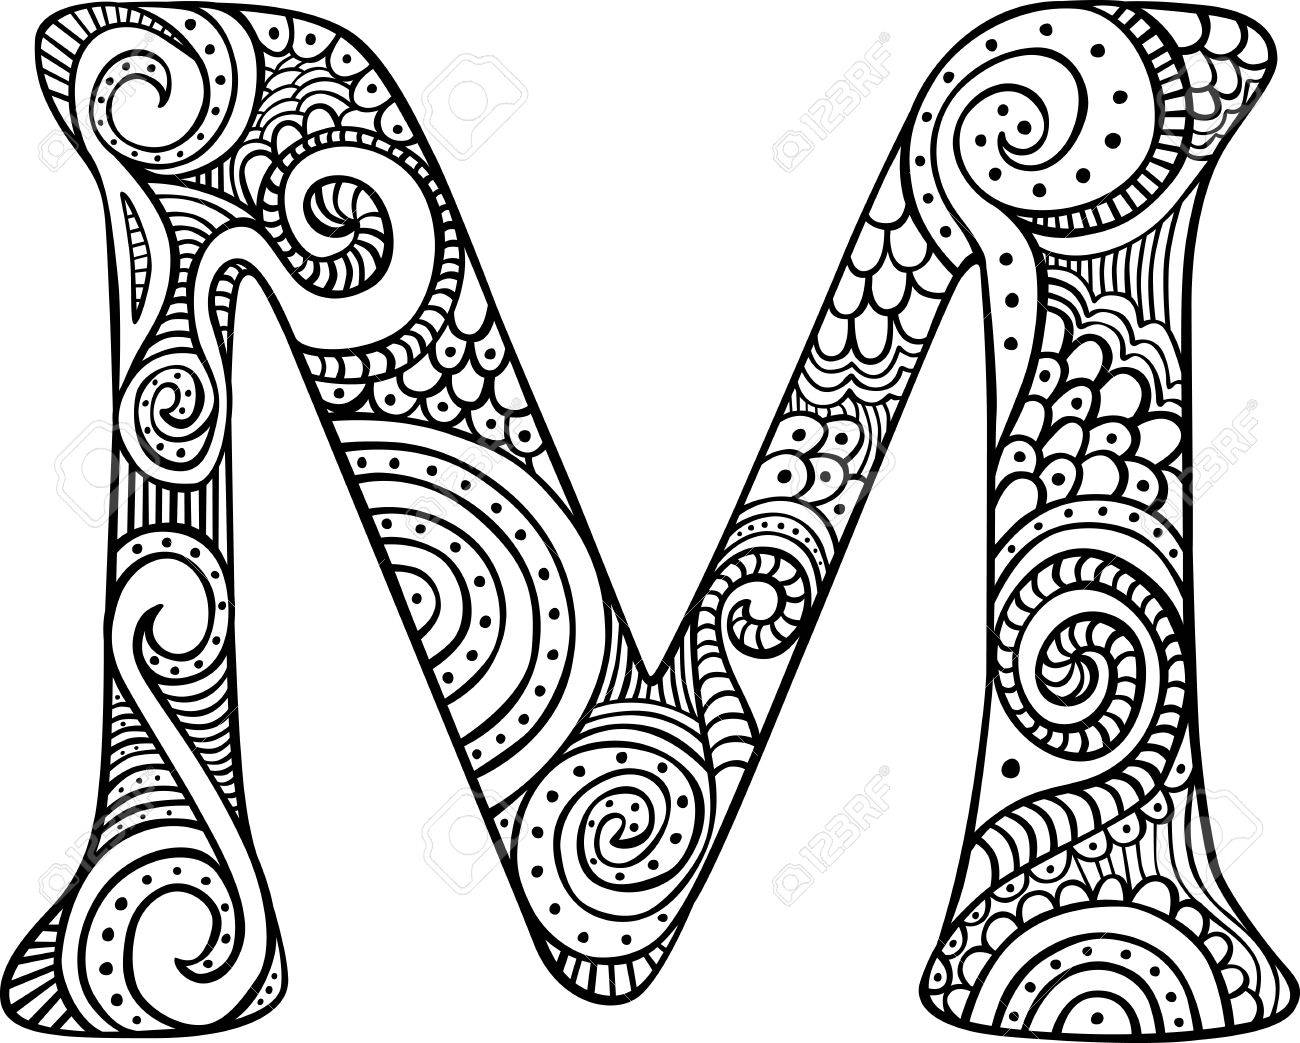 Letter M Drawing At Getdrawings